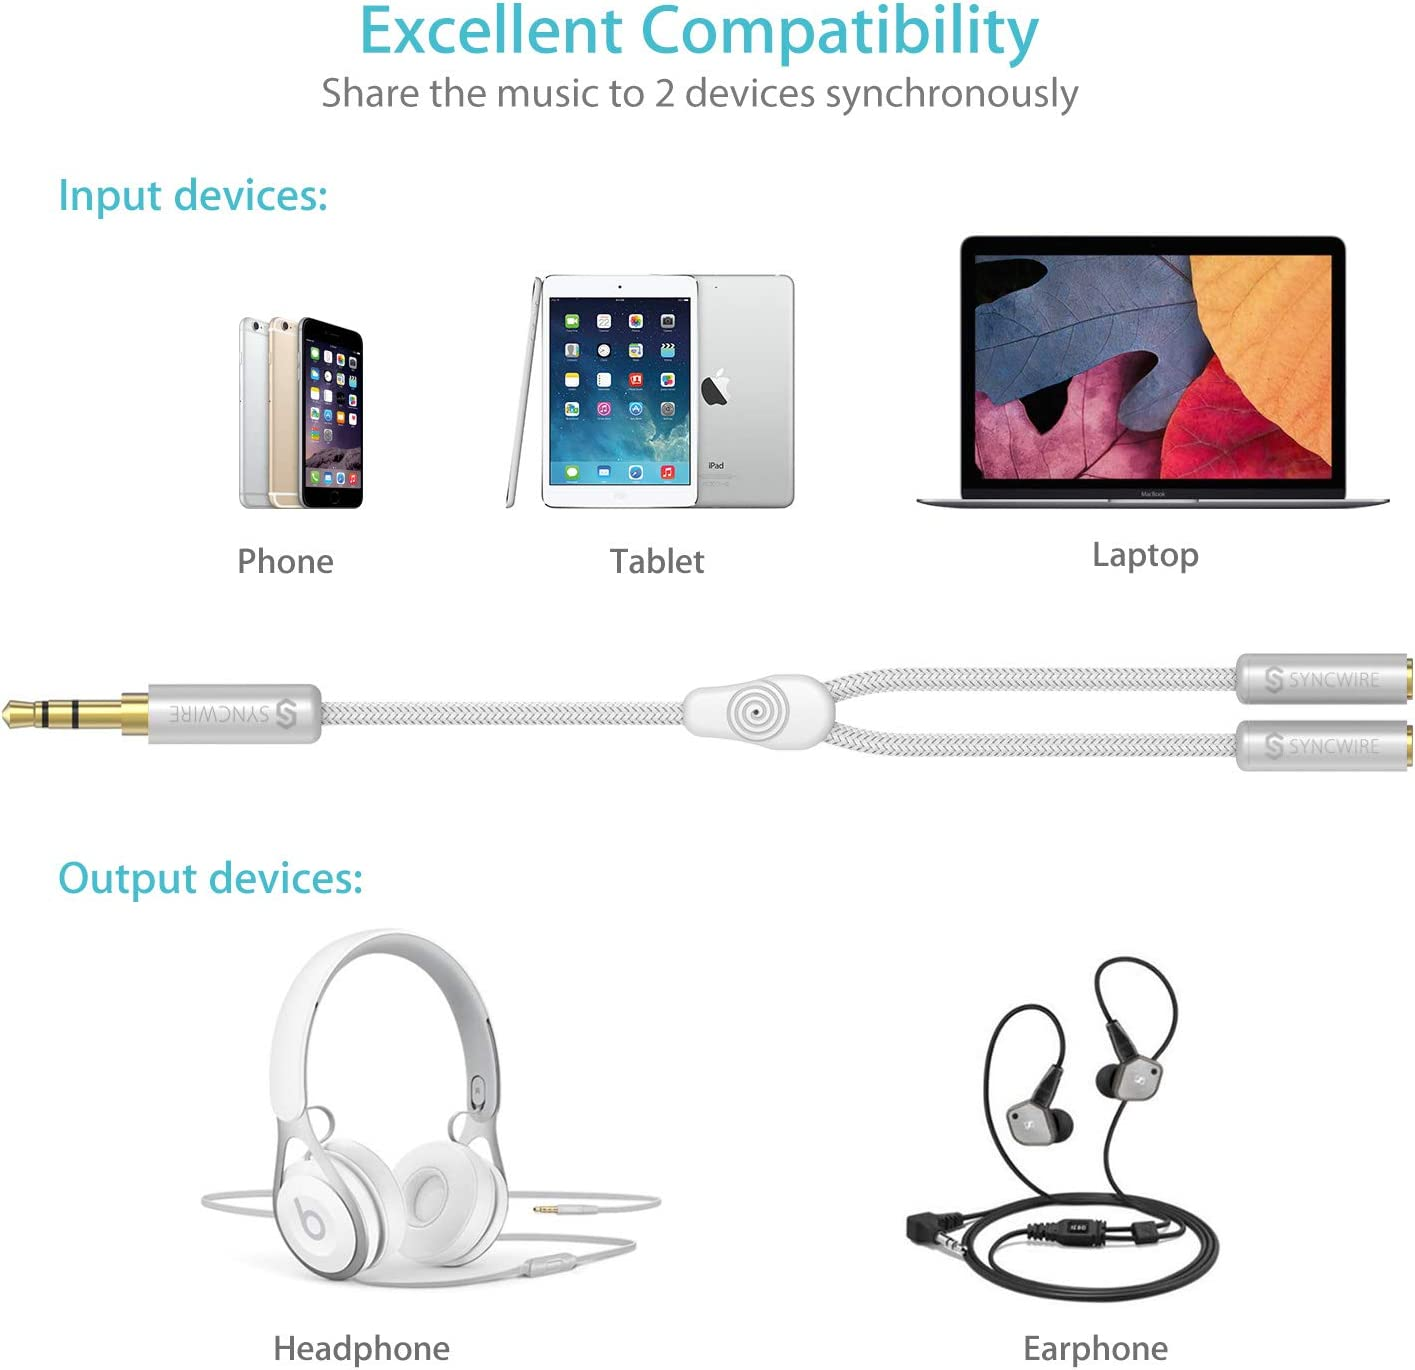 PS4 Switch Nylon-Braided 3.5mm Extension Cable Audio Stereo Y Splitter Syncwire Headphone Splitter 3.5mm Male To 2 Ports 3.5mm Female Headset Splitter for Phone Hi-Fi Sound Tablets /& More